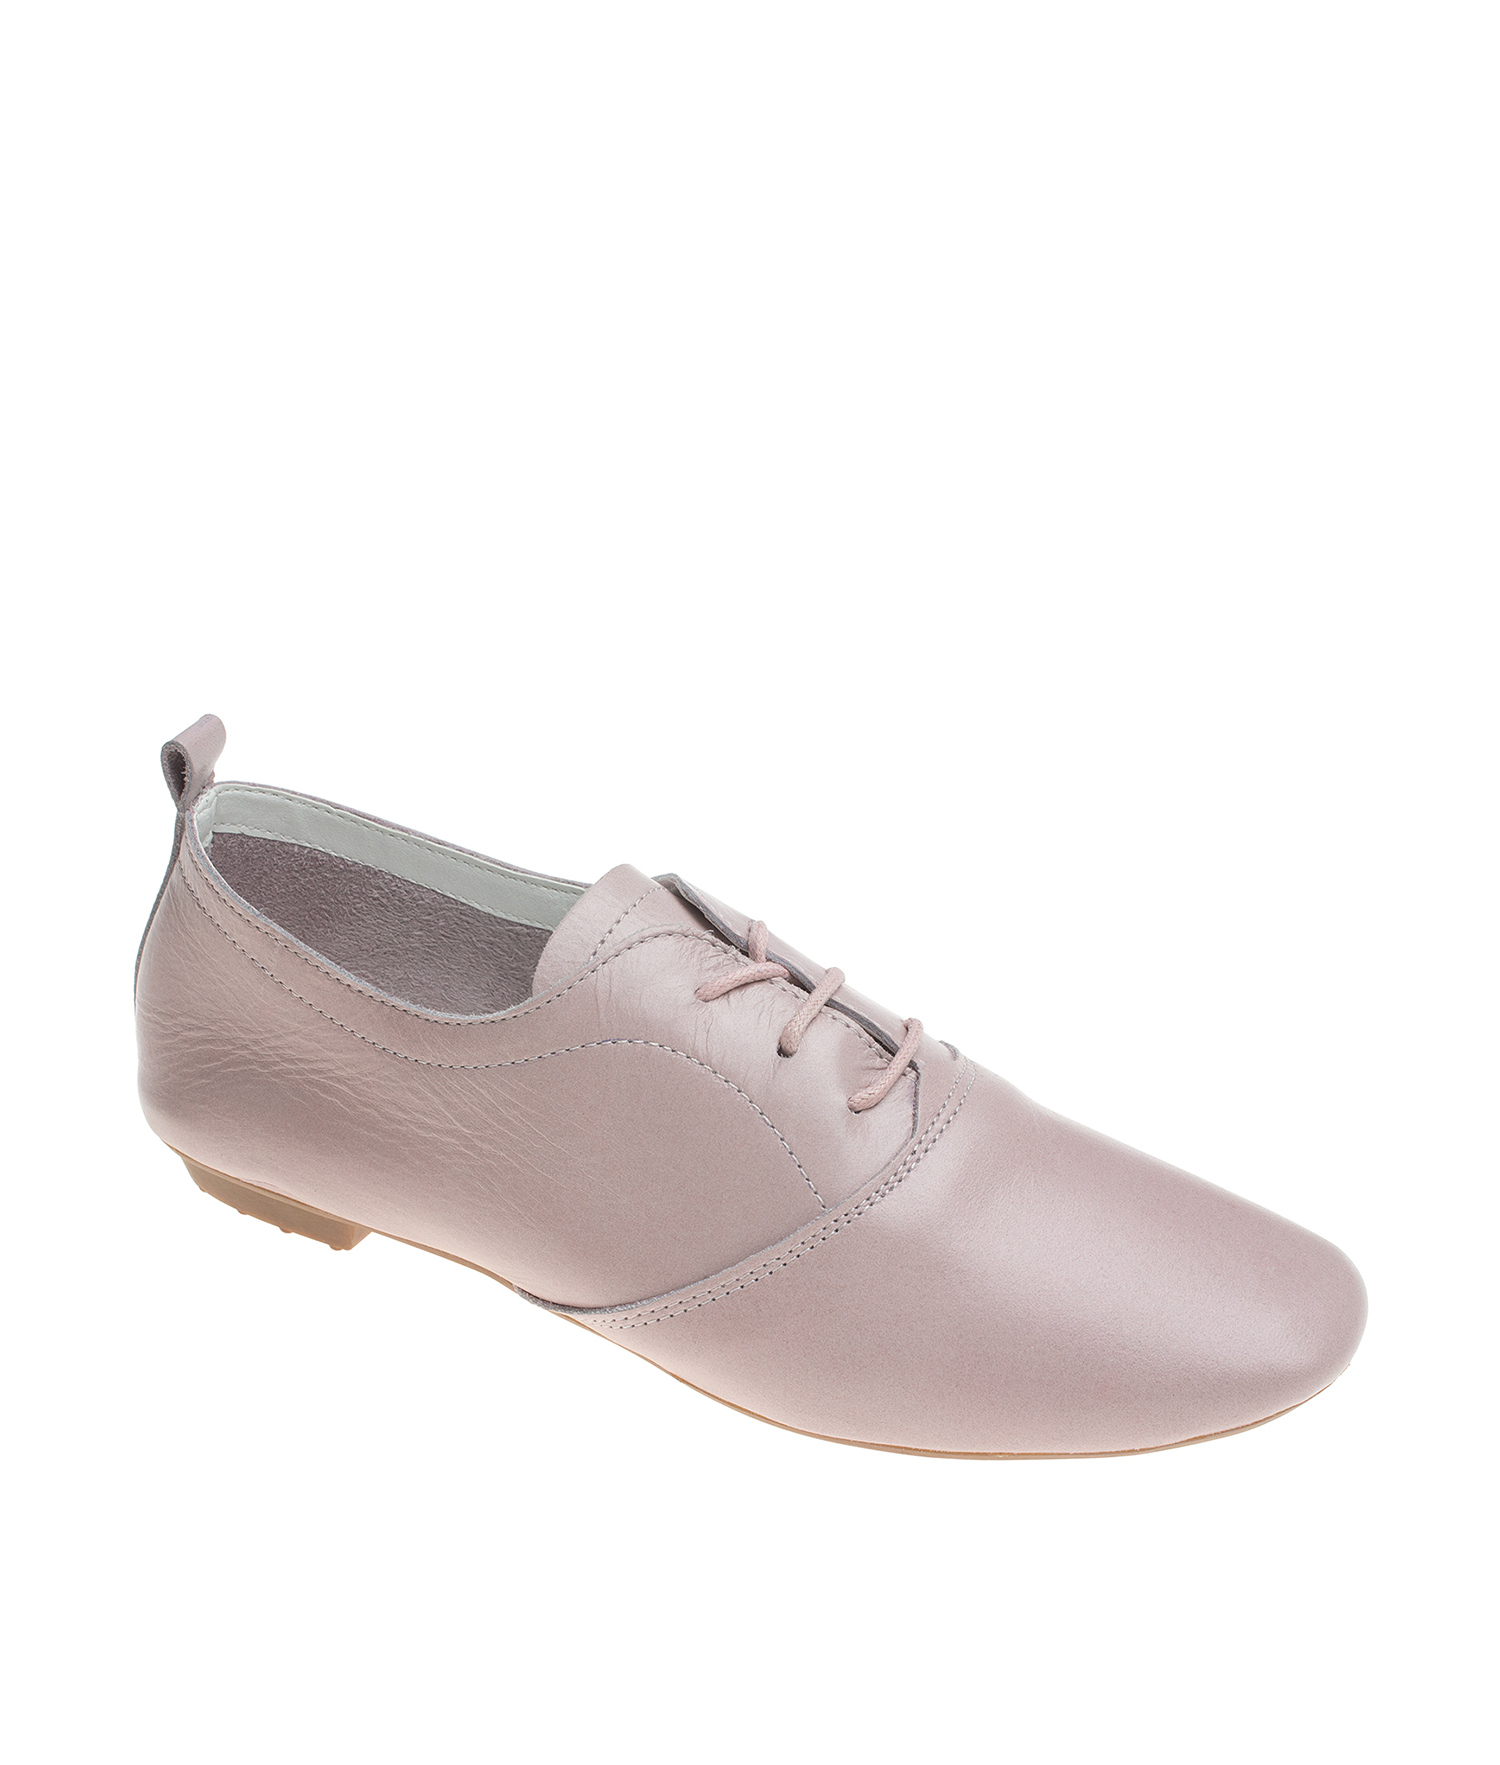 Soft Leather Oxford Driving Shoes